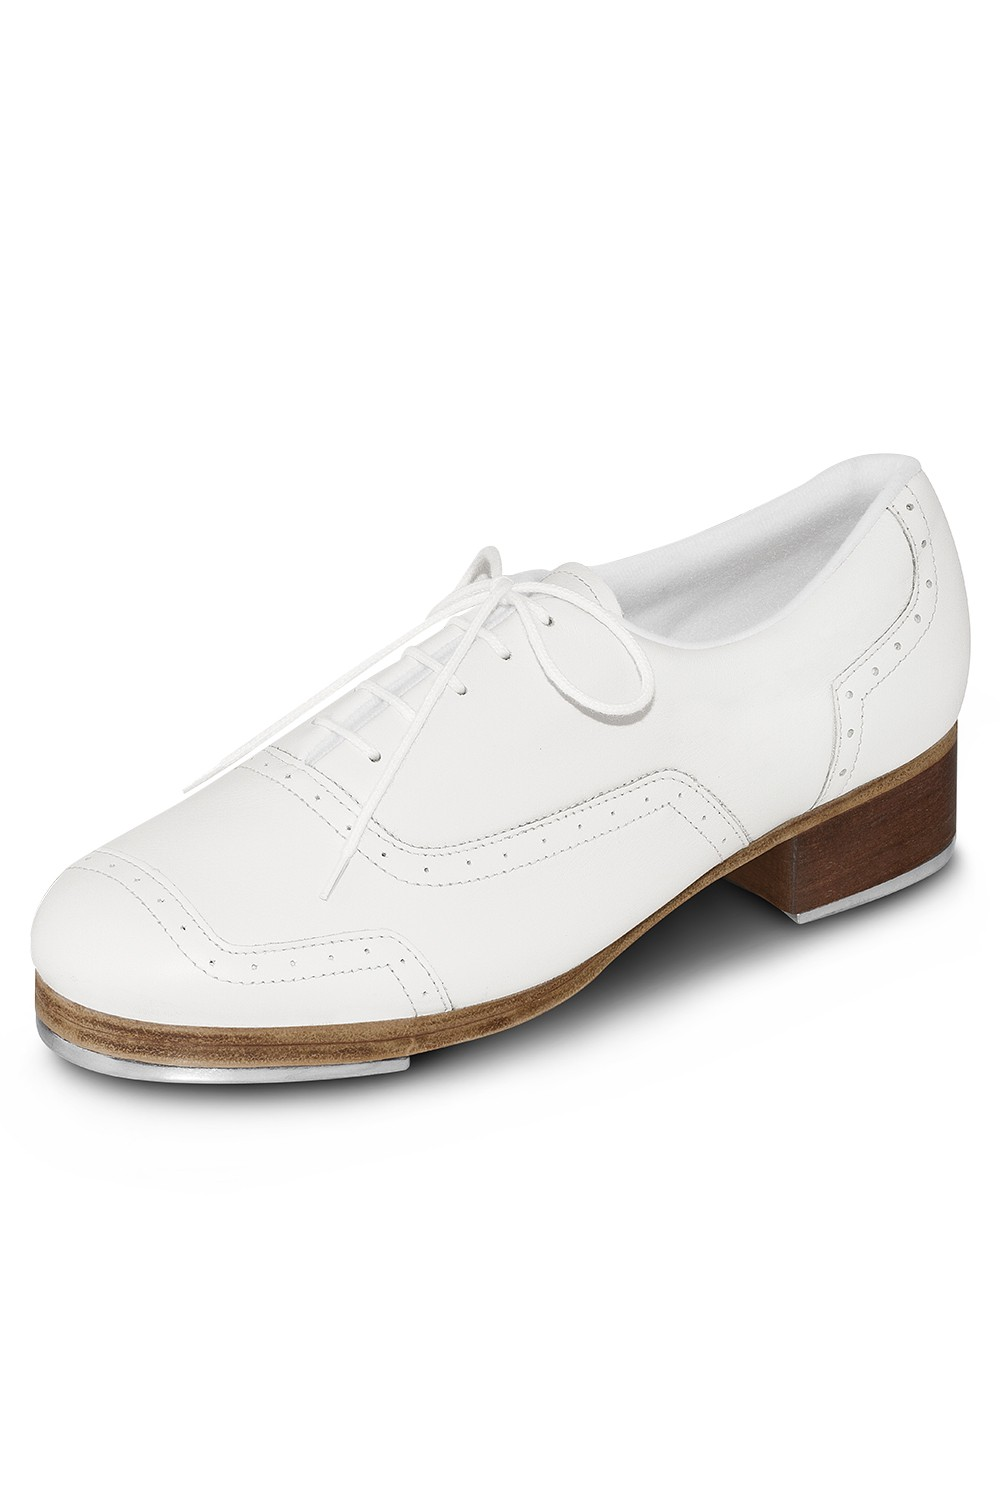 Jason Samuels Smith - Men's Men's Tap Shoes